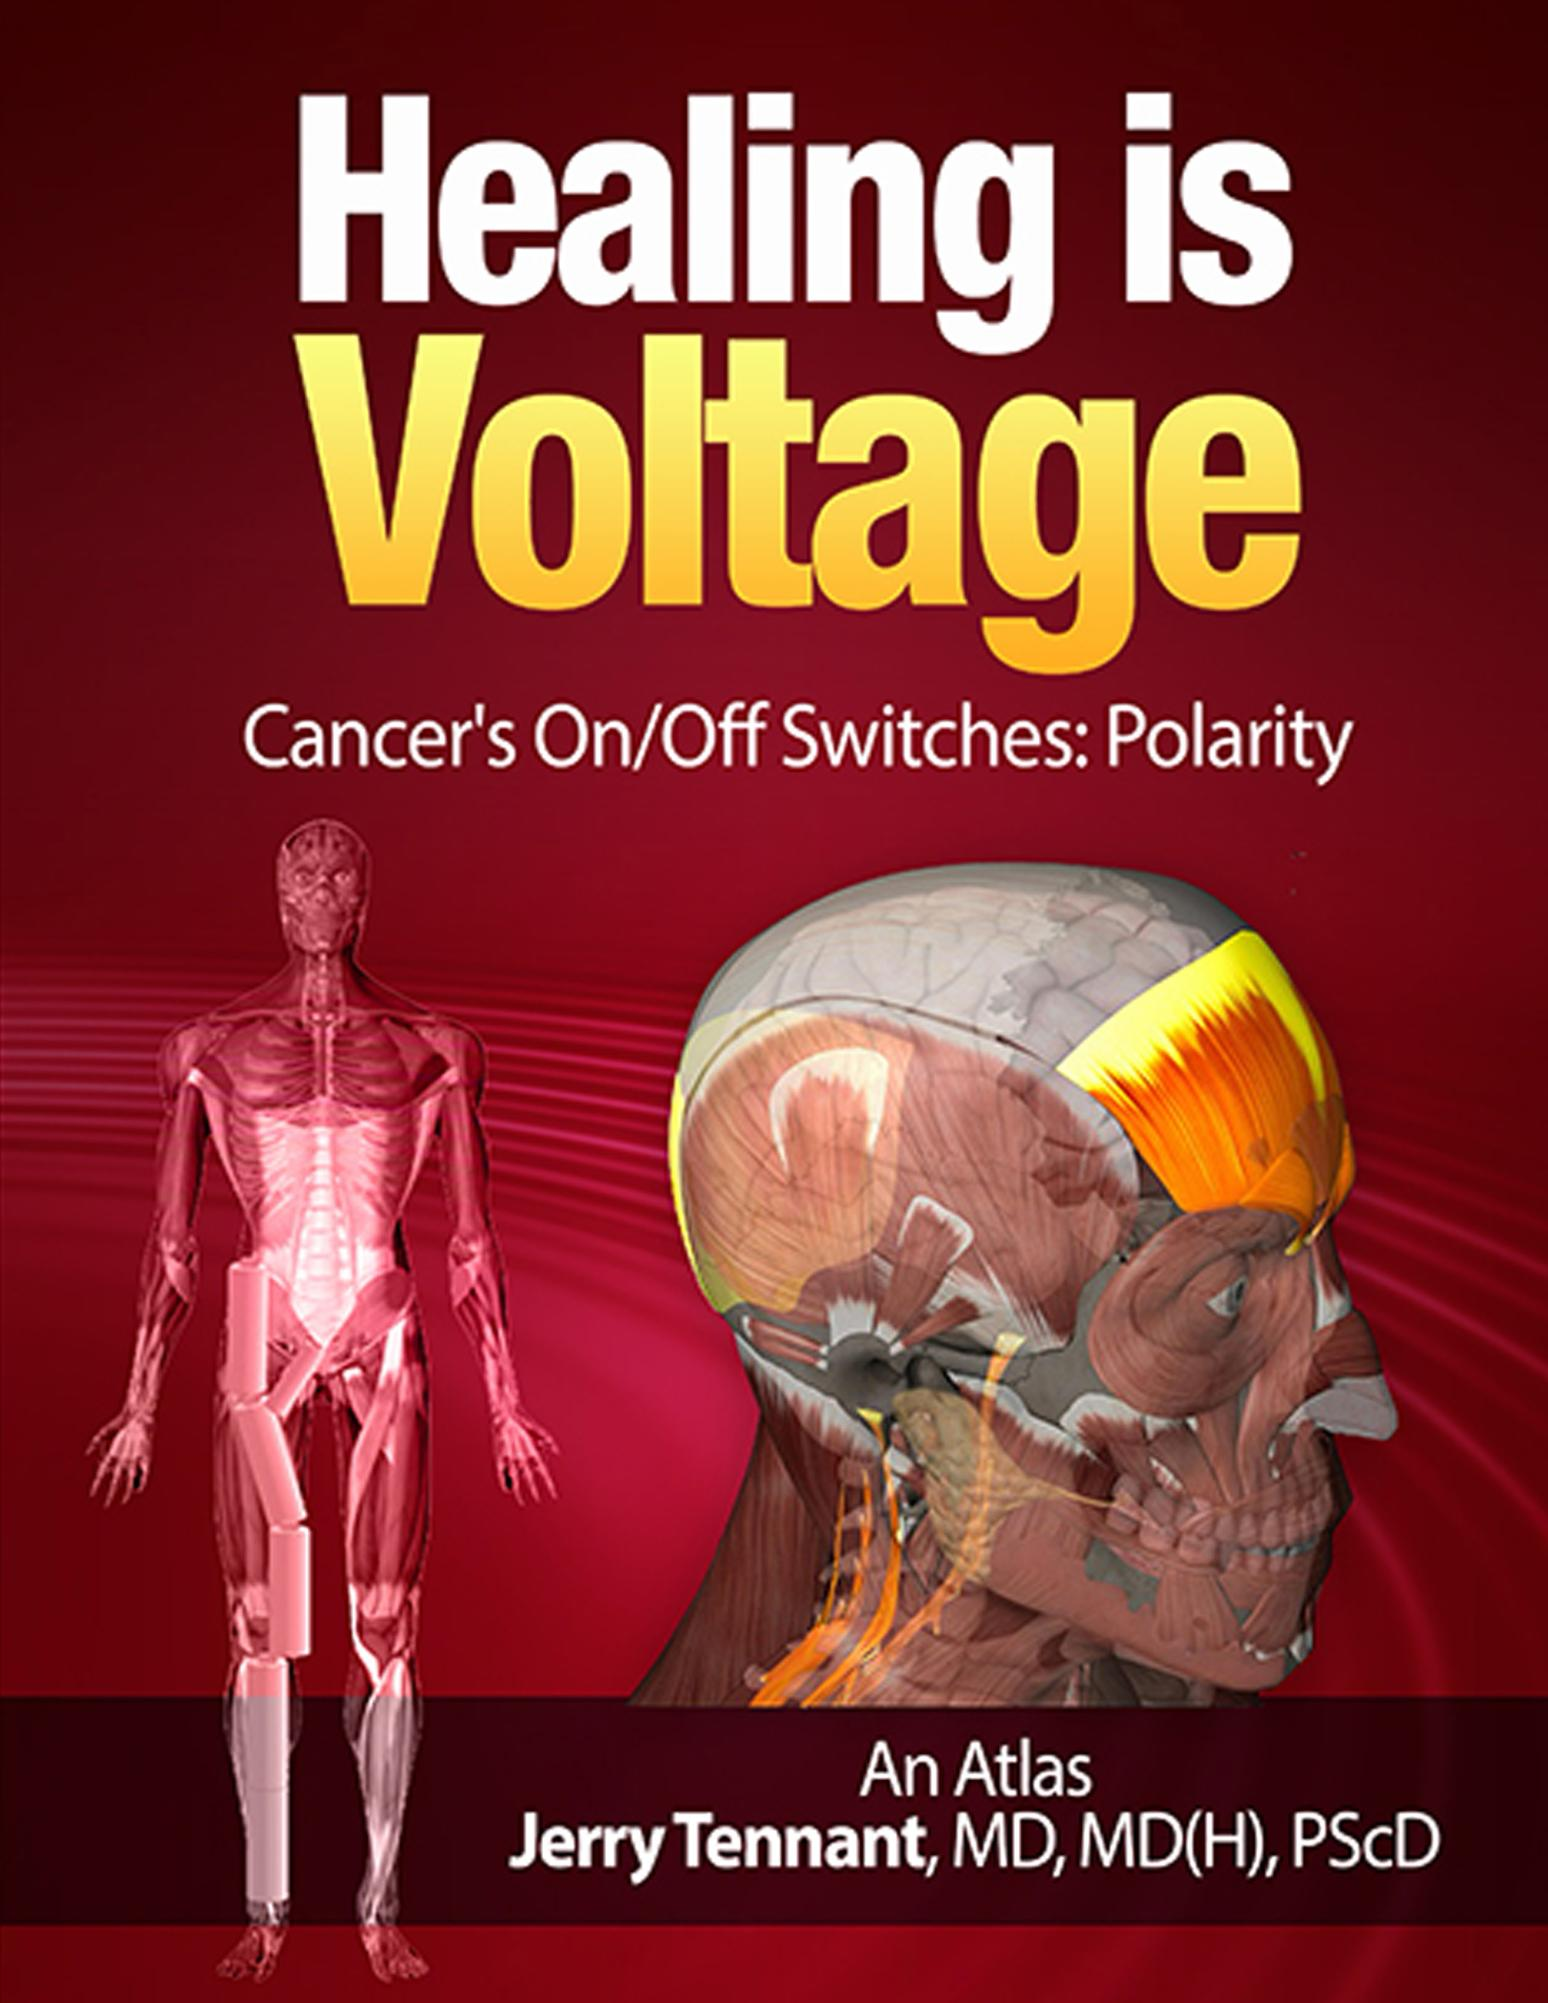 Very few health articles mention pH as a factor of voltage.They persist on explaining everything through the lens of chemical reactions only, leaving us to continue believing only in the paradigm of mechanical (surgery), and chemical (drugs) solutions to issues. We are missing a HUGE component!